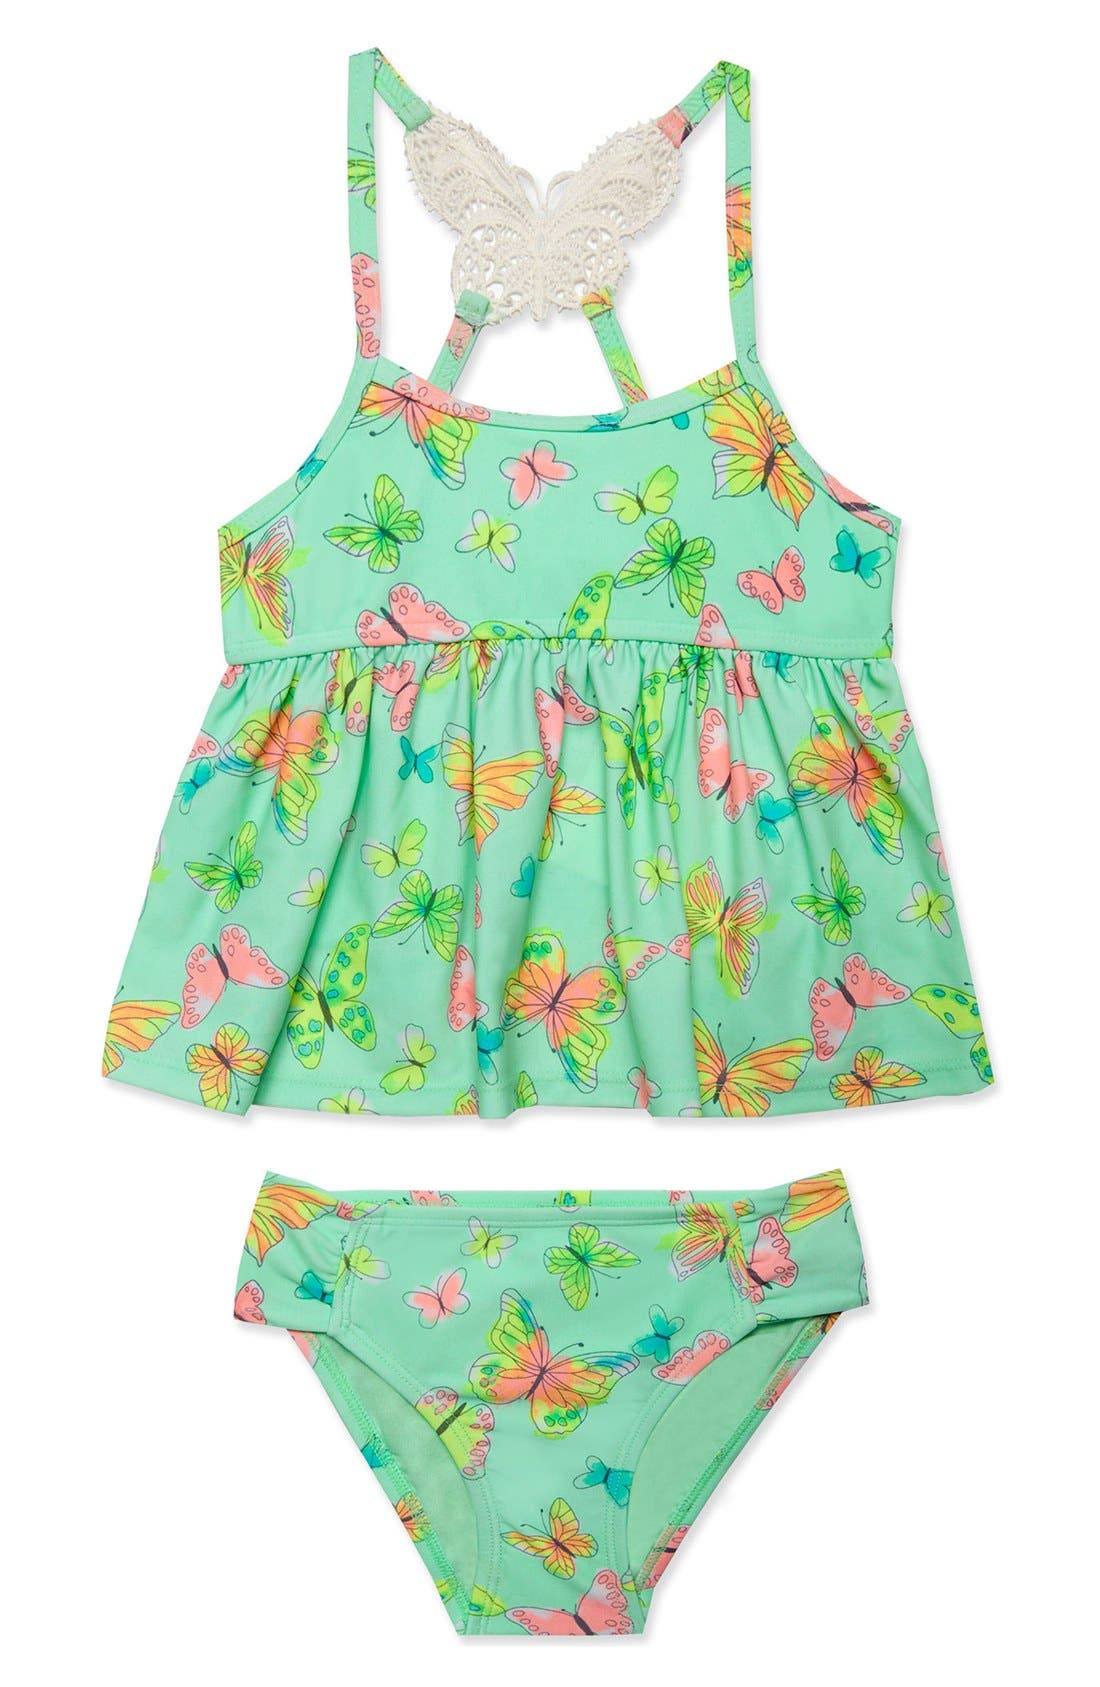 Main Image - Hula Star 'Butterfly' Two-Piece Tankini Swimsuit (Toddler Girls & Little Girls)